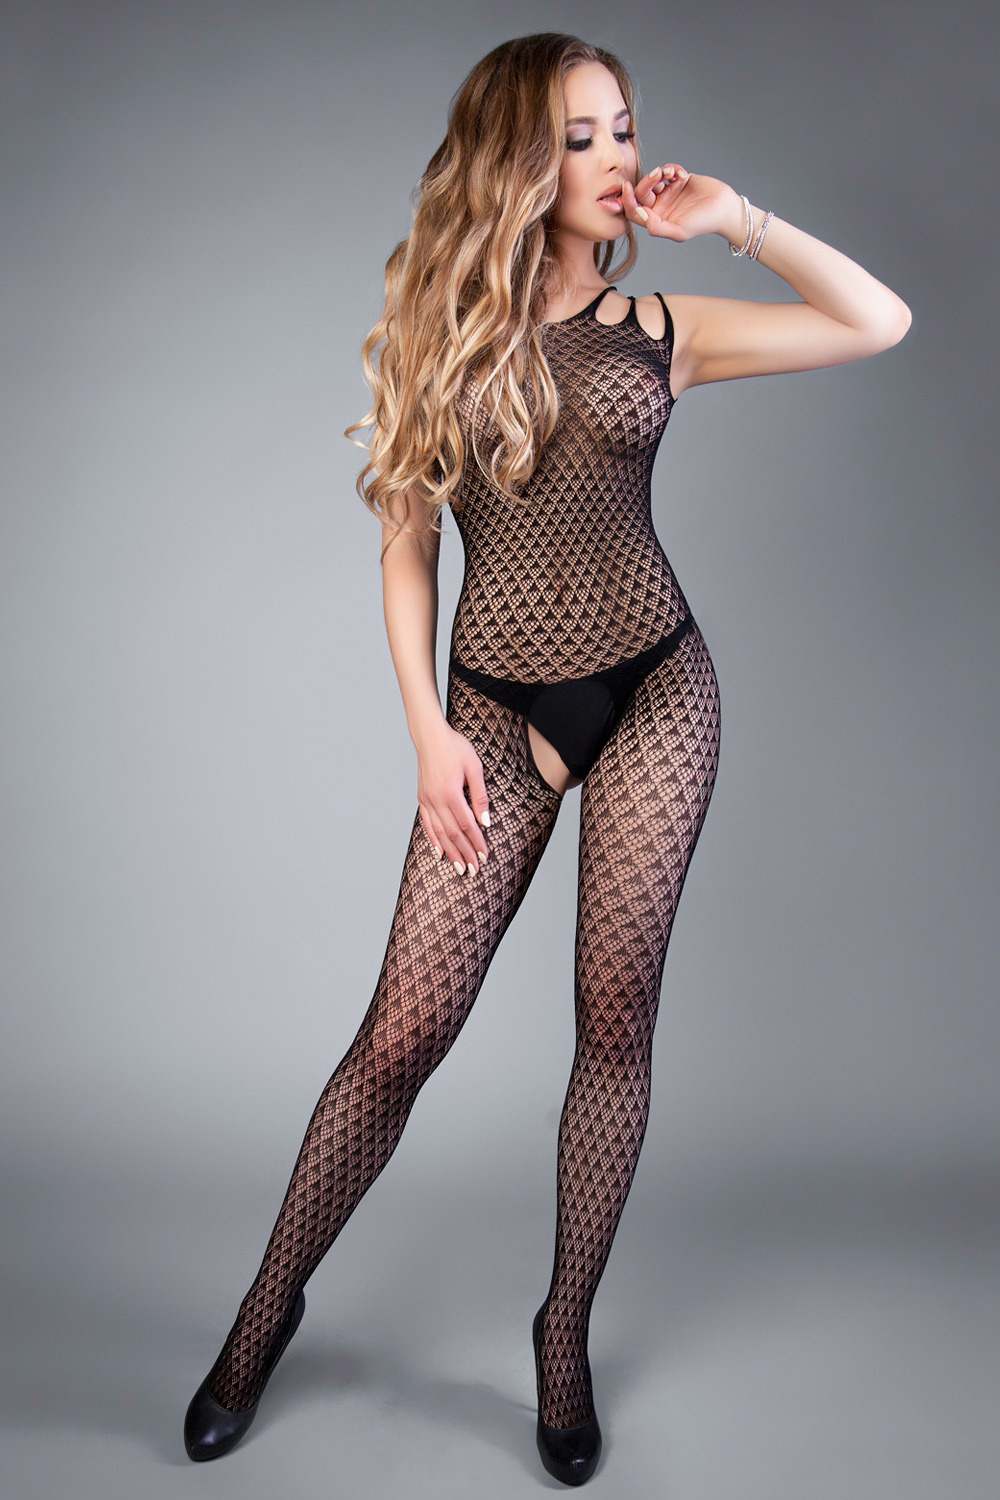 lef-04510-bodystocking_1_0